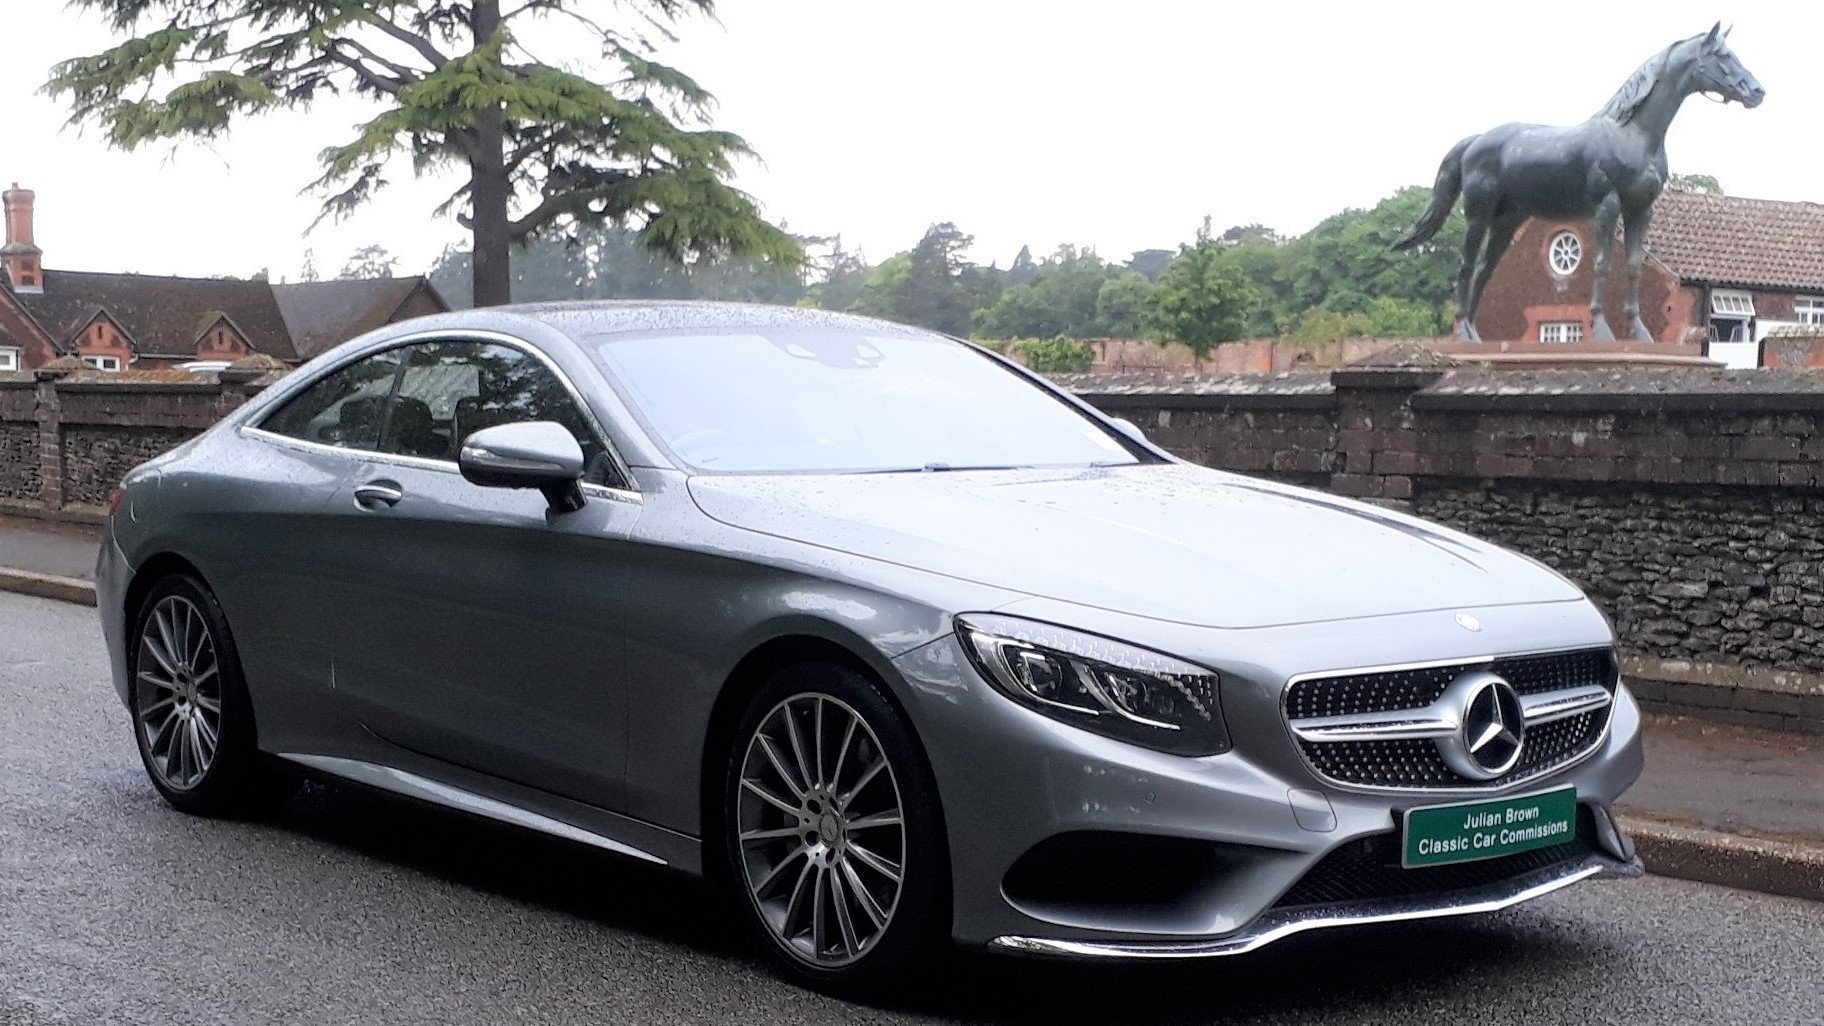 Mercedes-Benz S500 AMG Coupe 2015 29k Miles 1 Owner £110k V8 SOLD (picture 1 of 6)